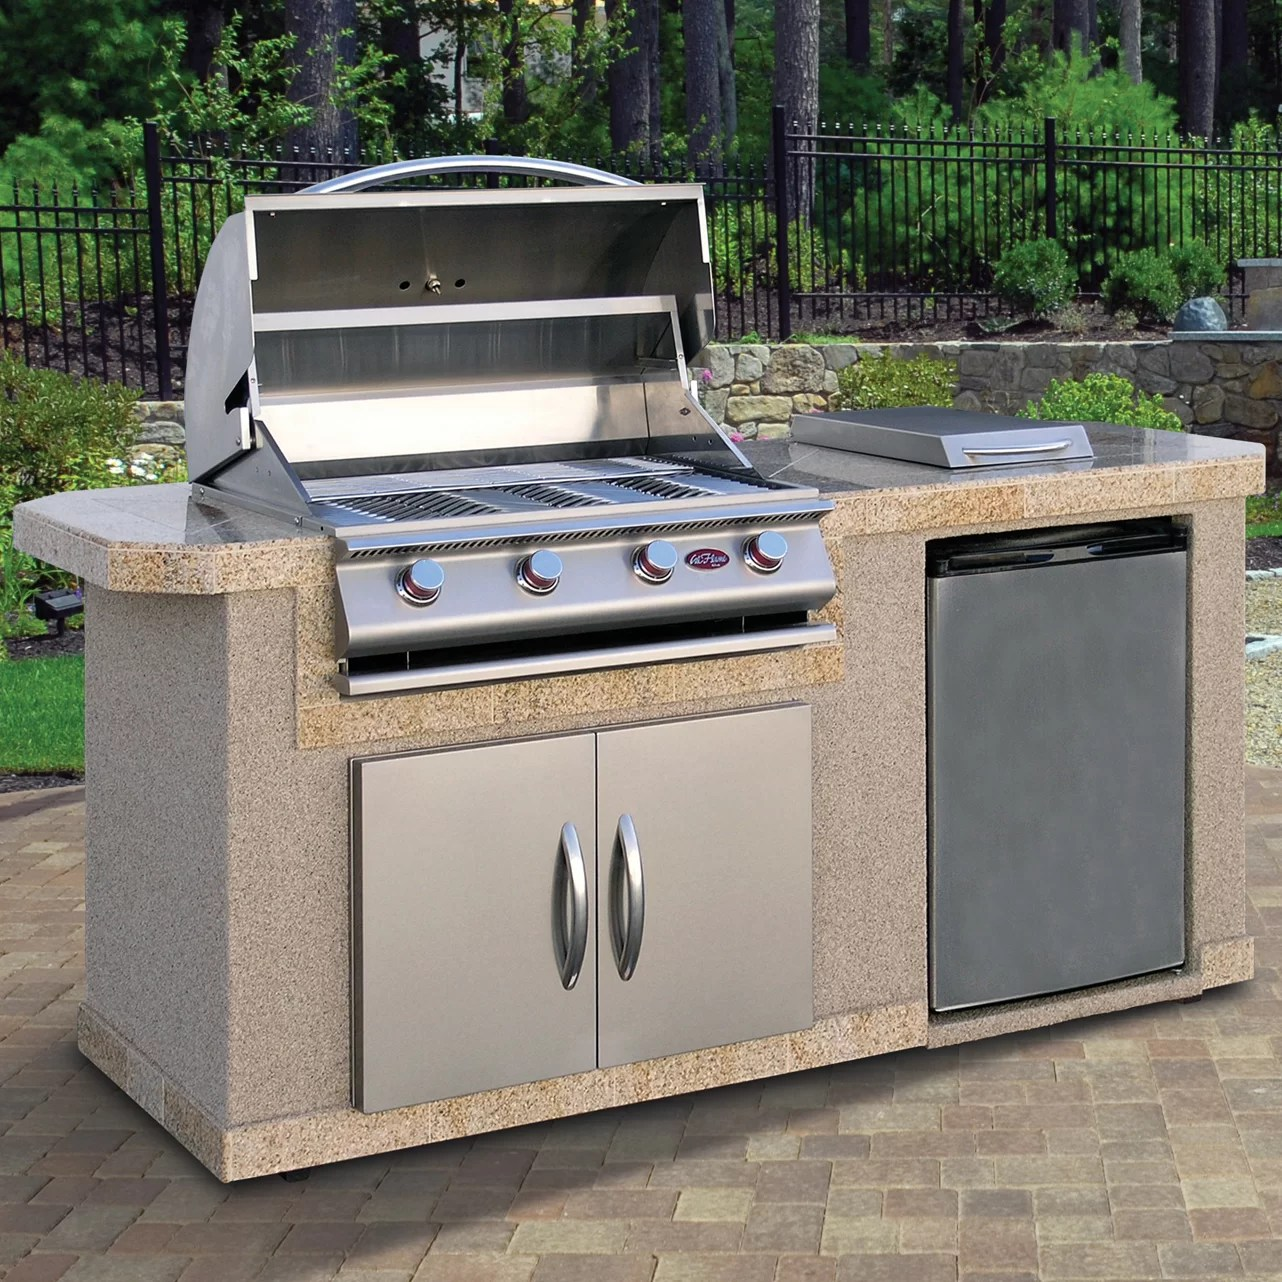 CalFlame Outdoor Kitchen Islands 4-Burner Built-In Propane ... on Built In Grill Backyard id=48446